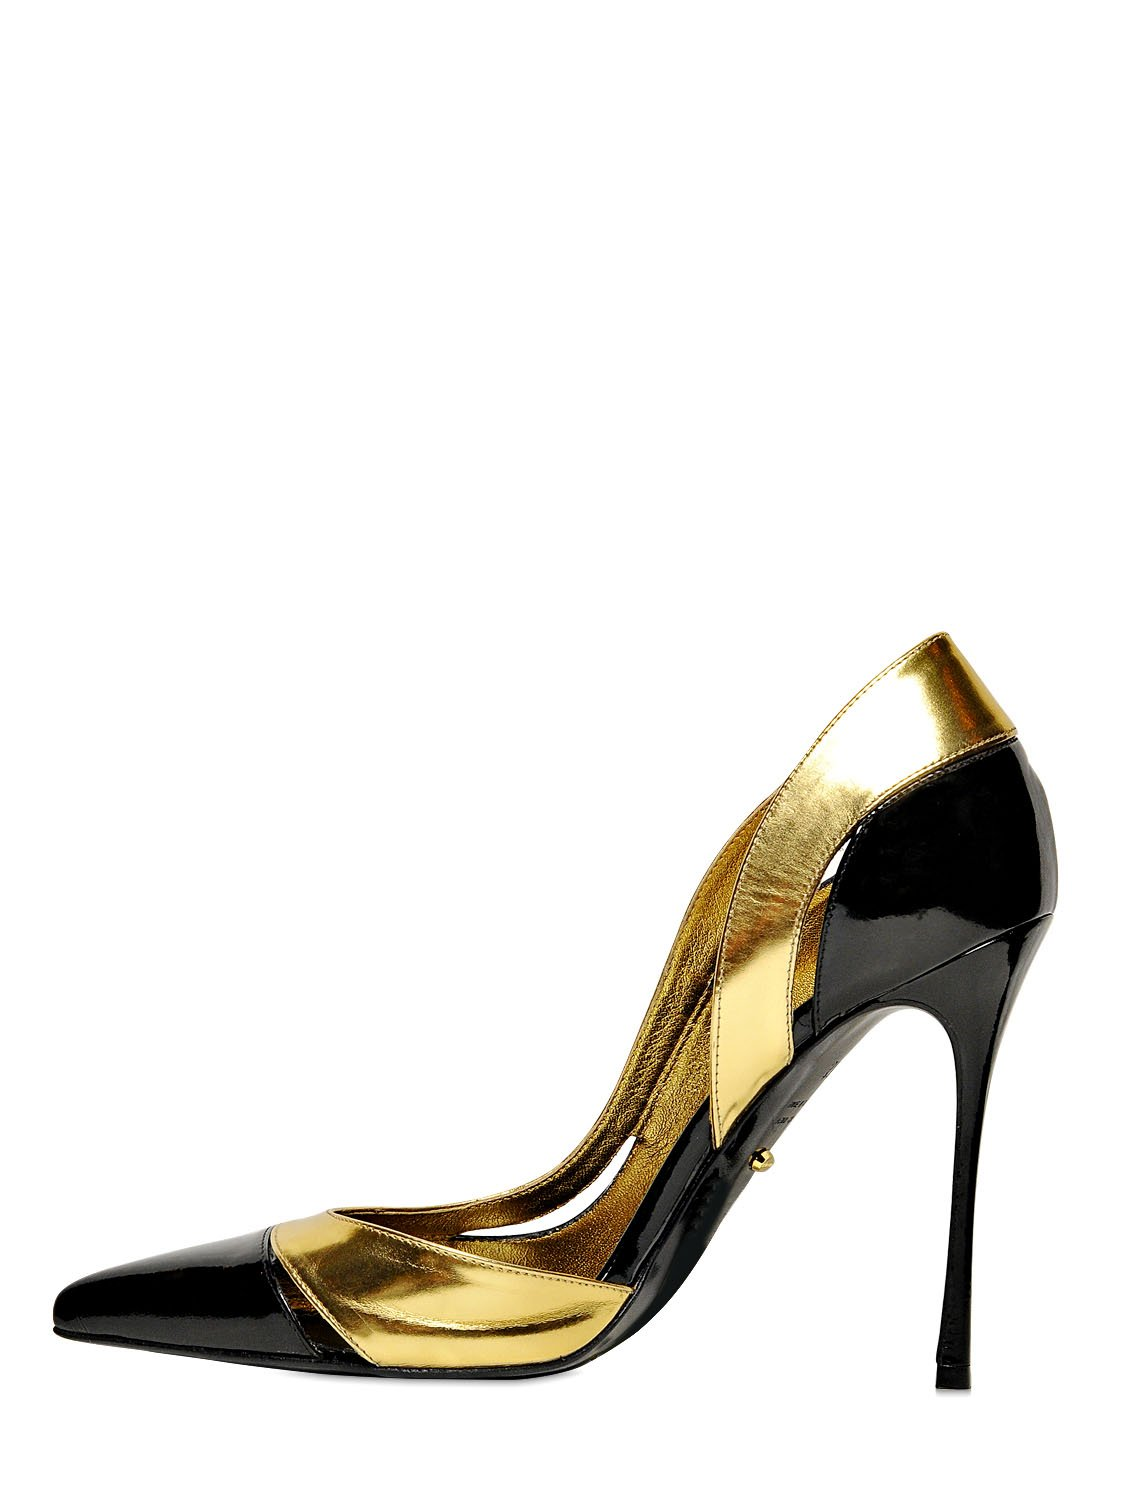 sergio rossi 105mm ying yang metallic leather pumps in gold black gold lyst. Black Bedroom Furniture Sets. Home Design Ideas